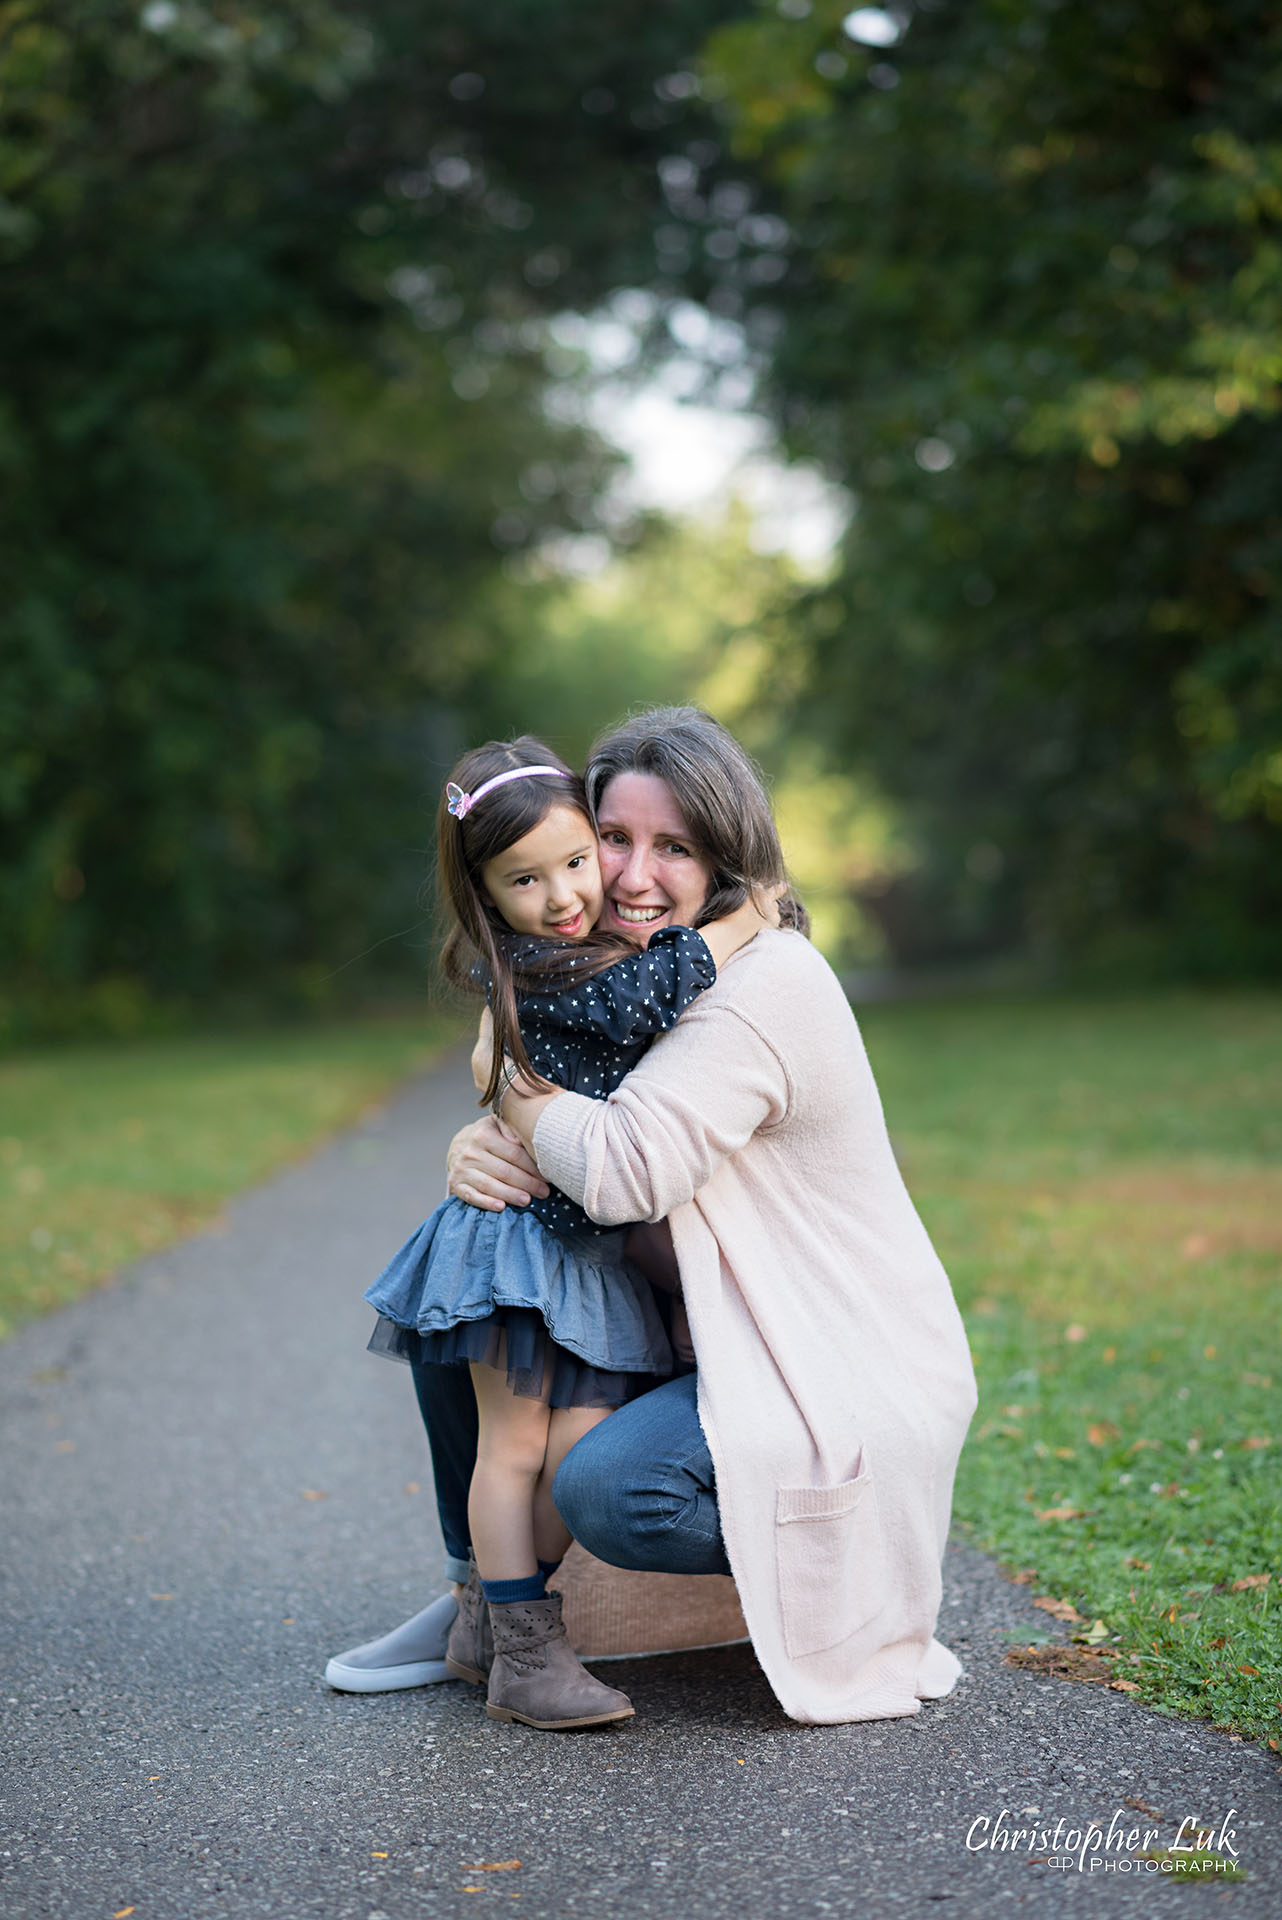 Christopher Luk Family Photographer Toronto Markham Candid Natural Photojournalistic Mother Daughter Hug Squeeze